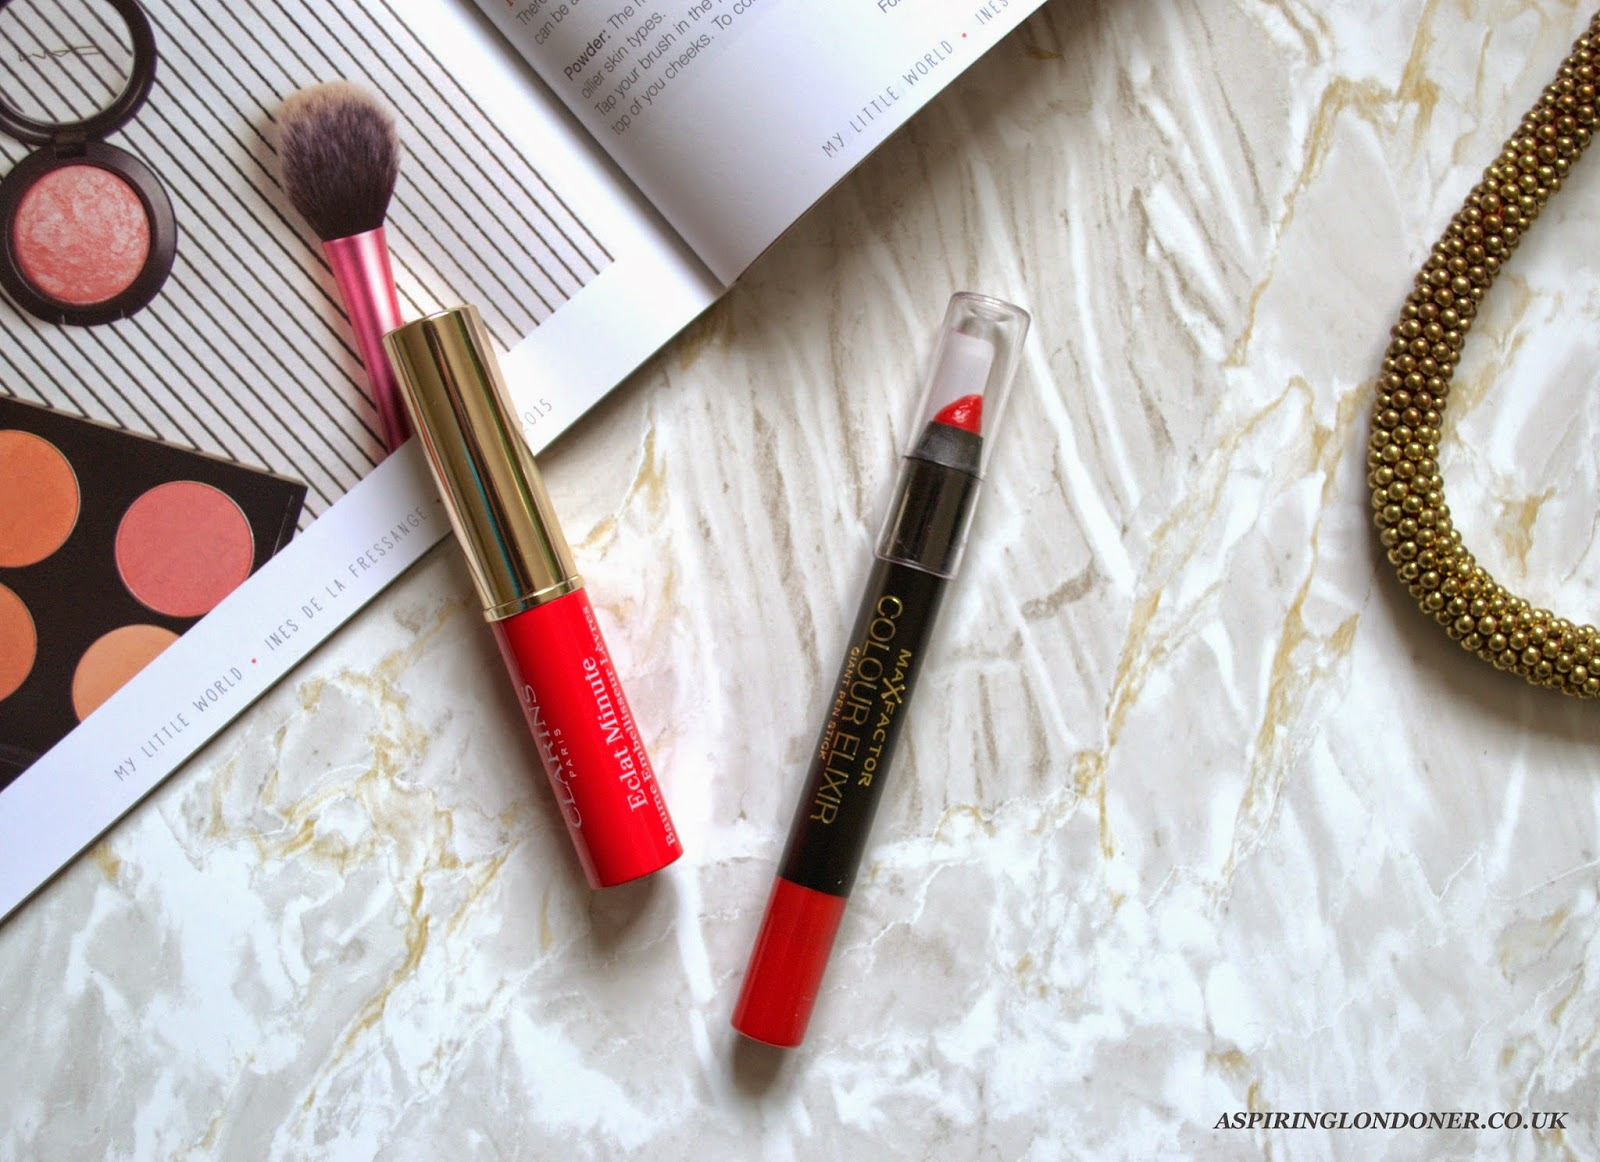 Clarins Instant Light Lip Balm Perfector Dupe Review & Swatch - Aspiring Londoner